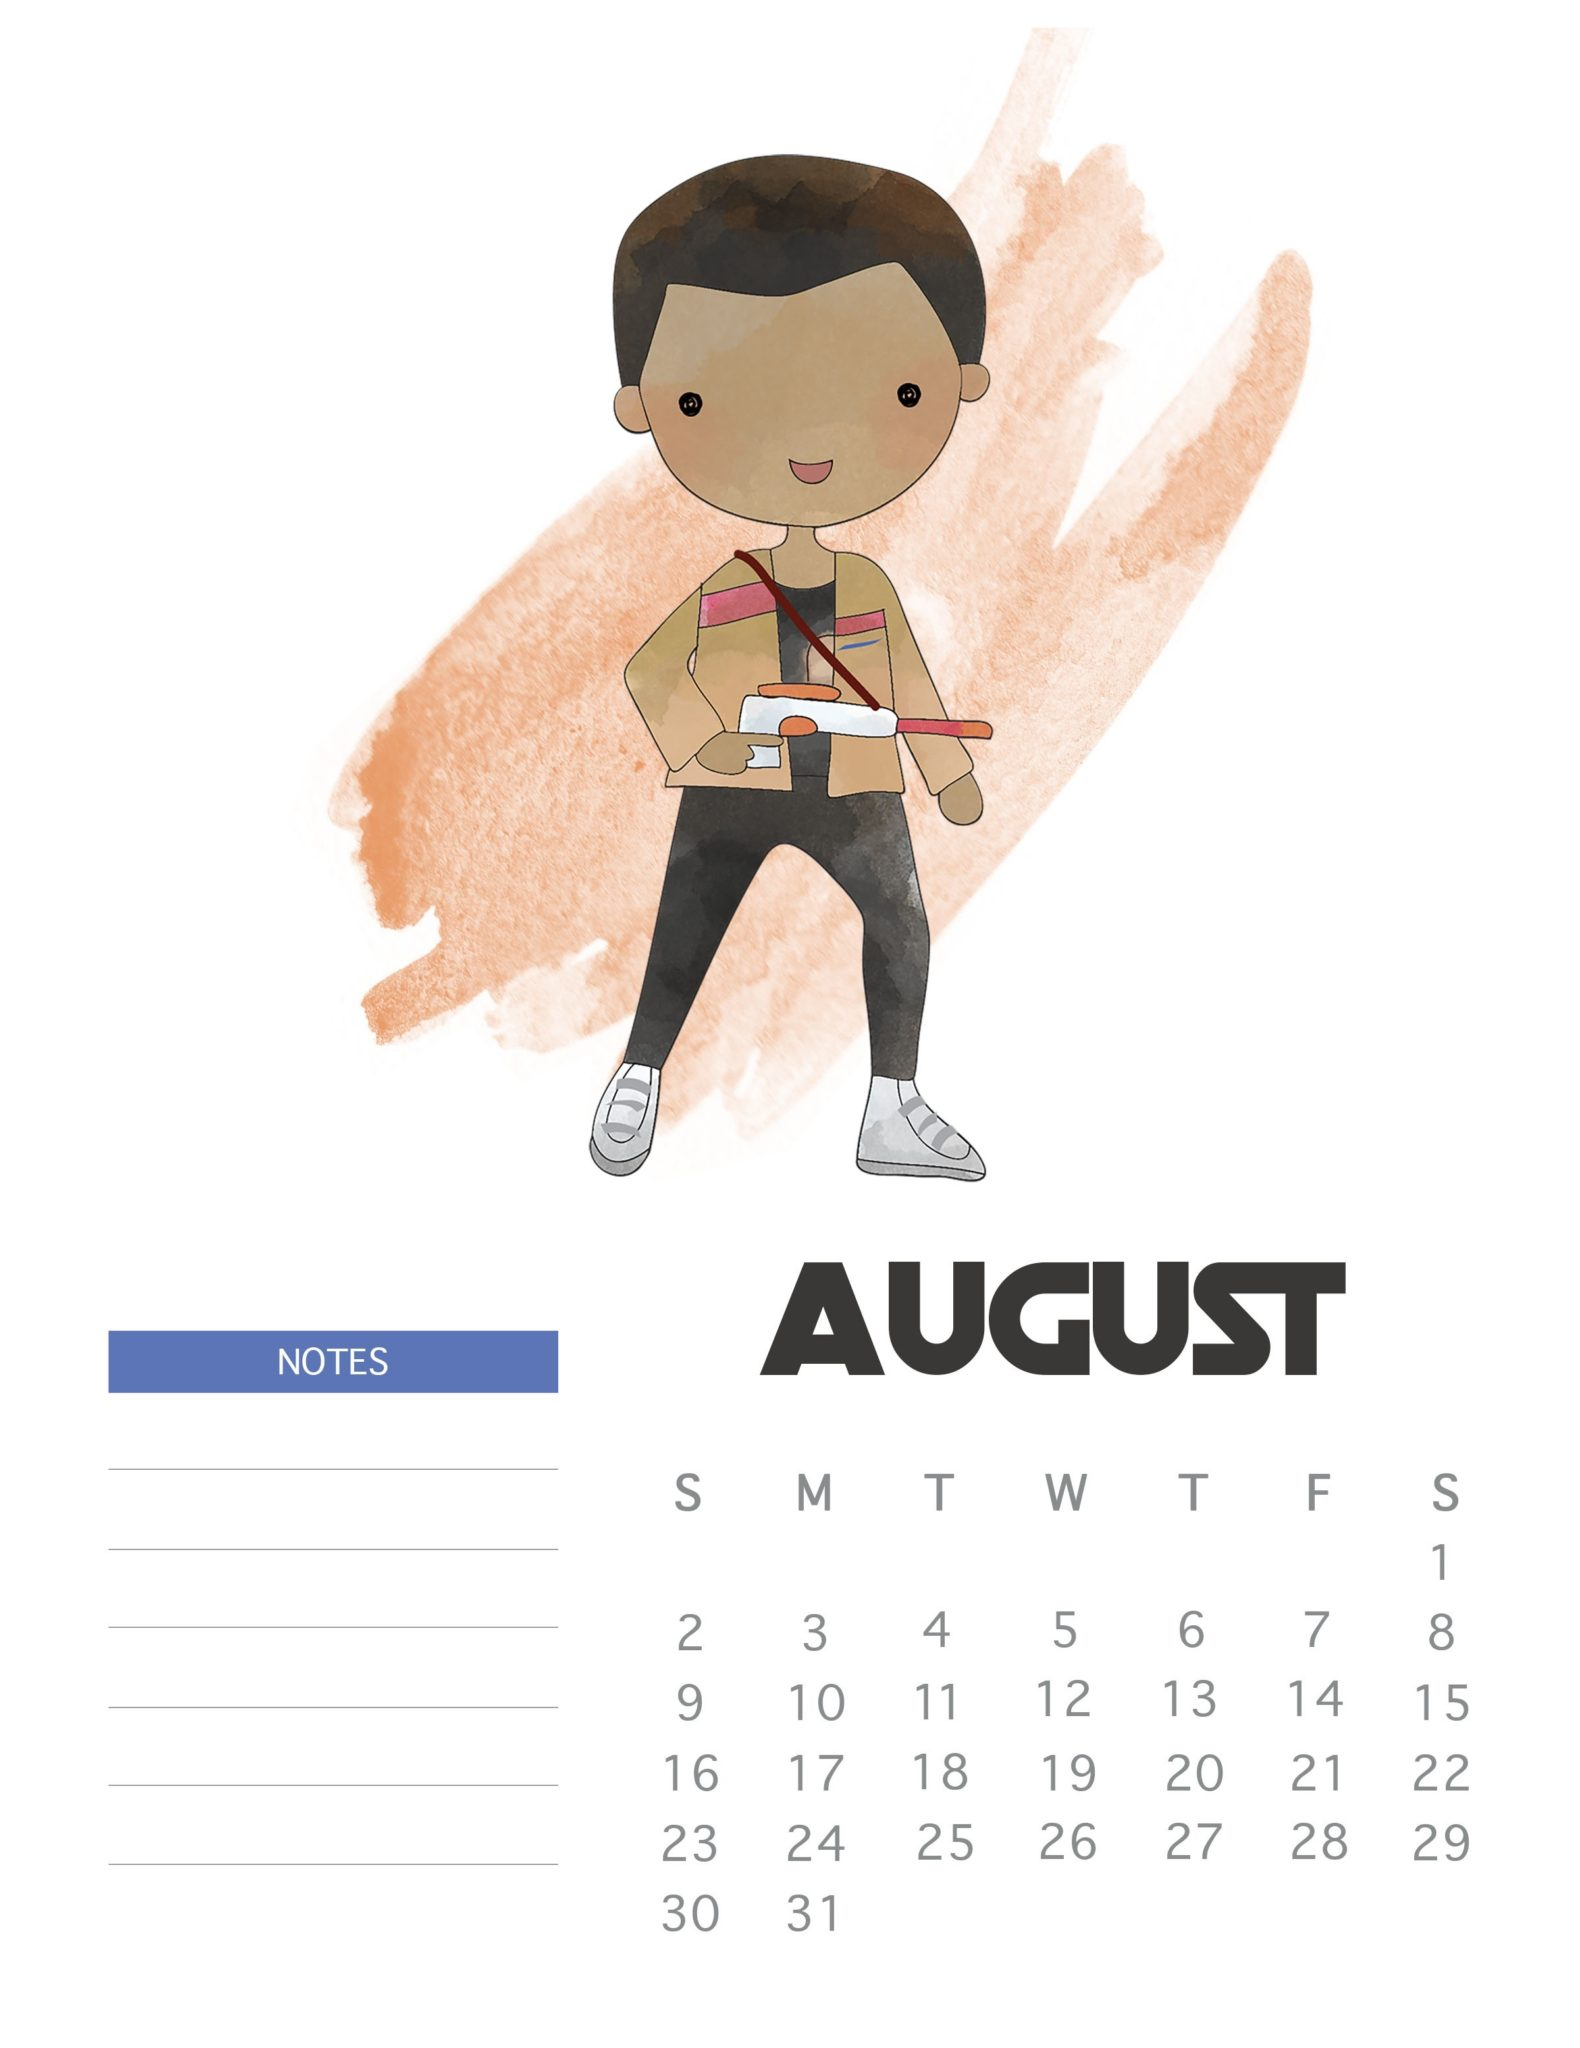 Star Wars August 2020 Desk Calendar